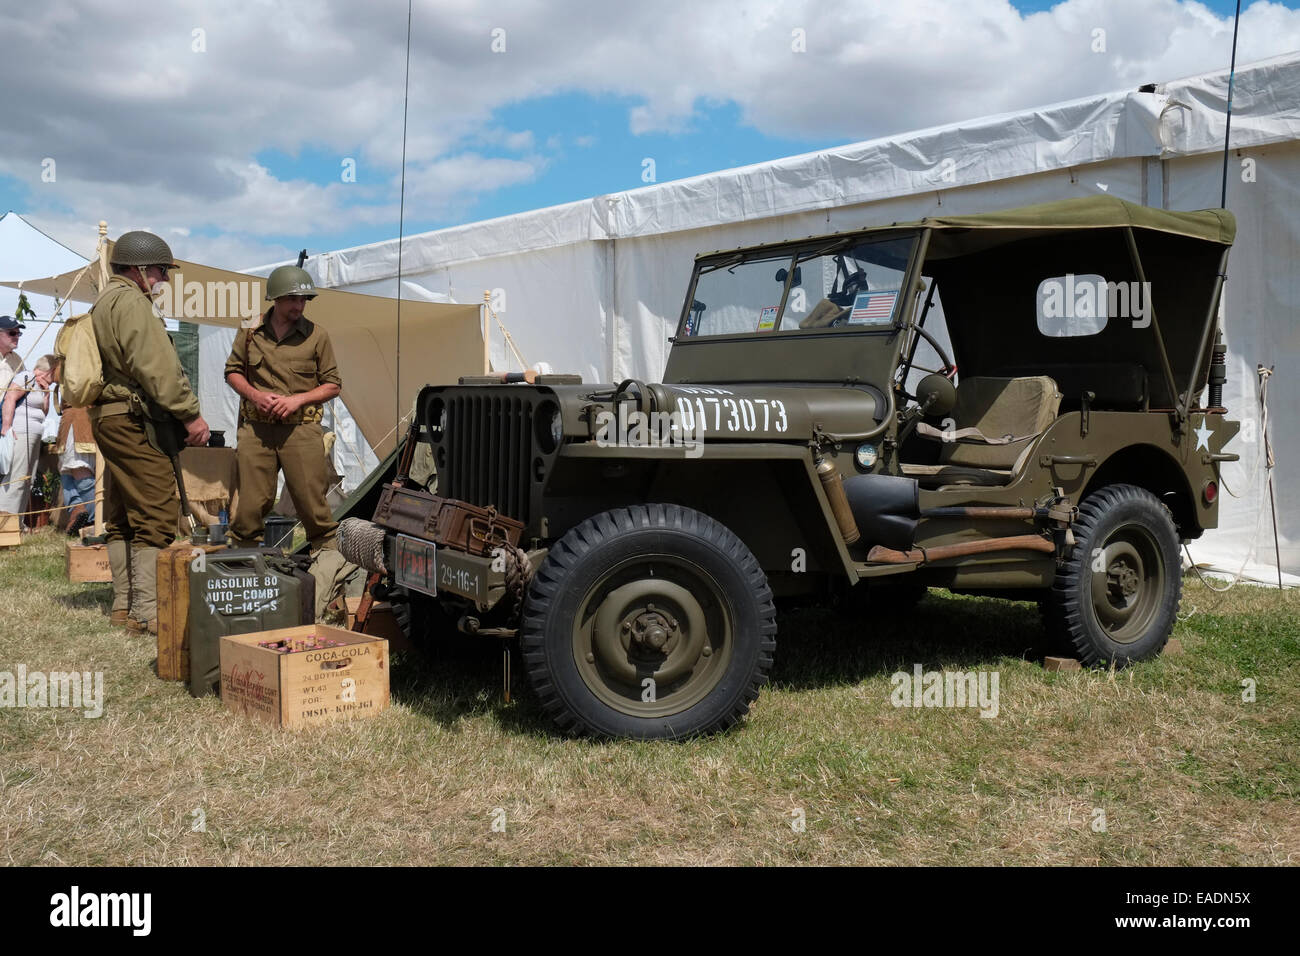 willys mb jeep stock photos willys mb jeep stock images. Black Bedroom Furniture Sets. Home Design Ideas